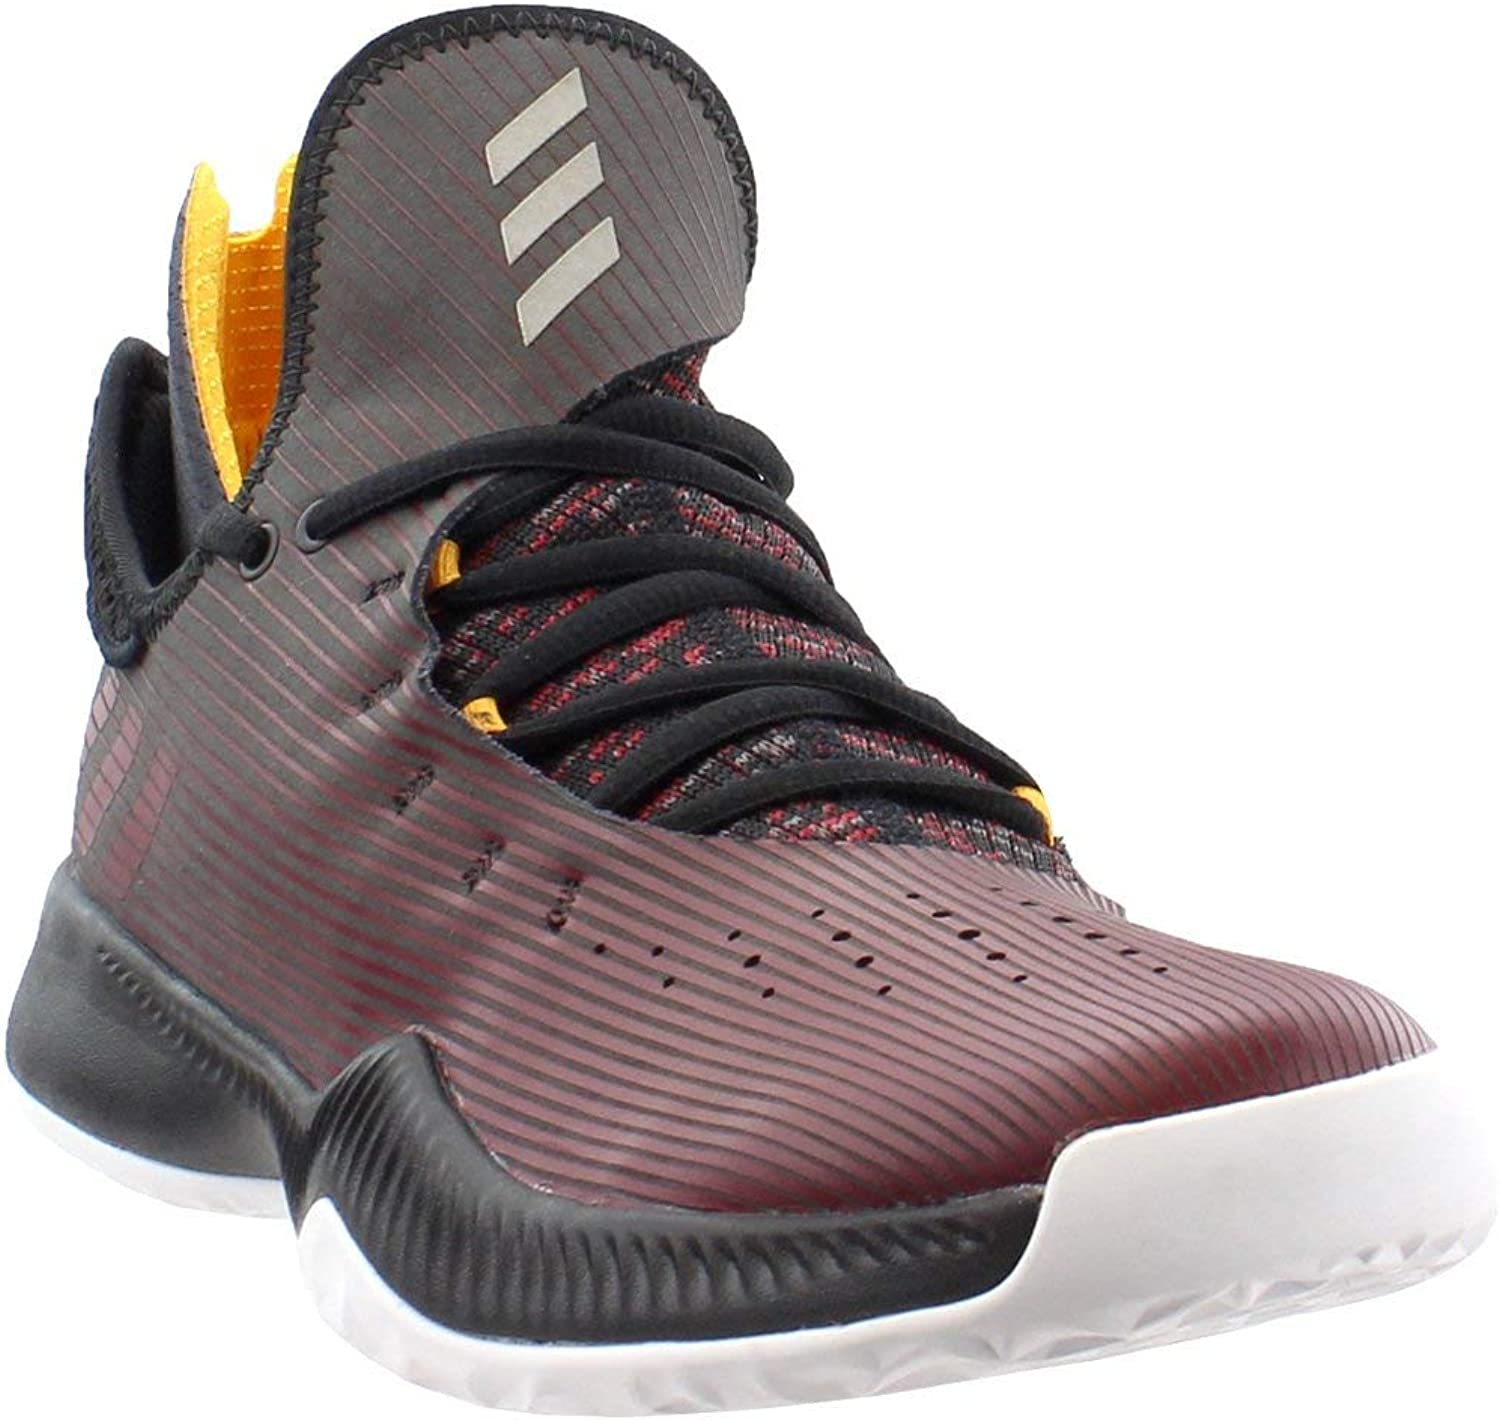 Adidas Harden Pensole shoes Men's Basketball